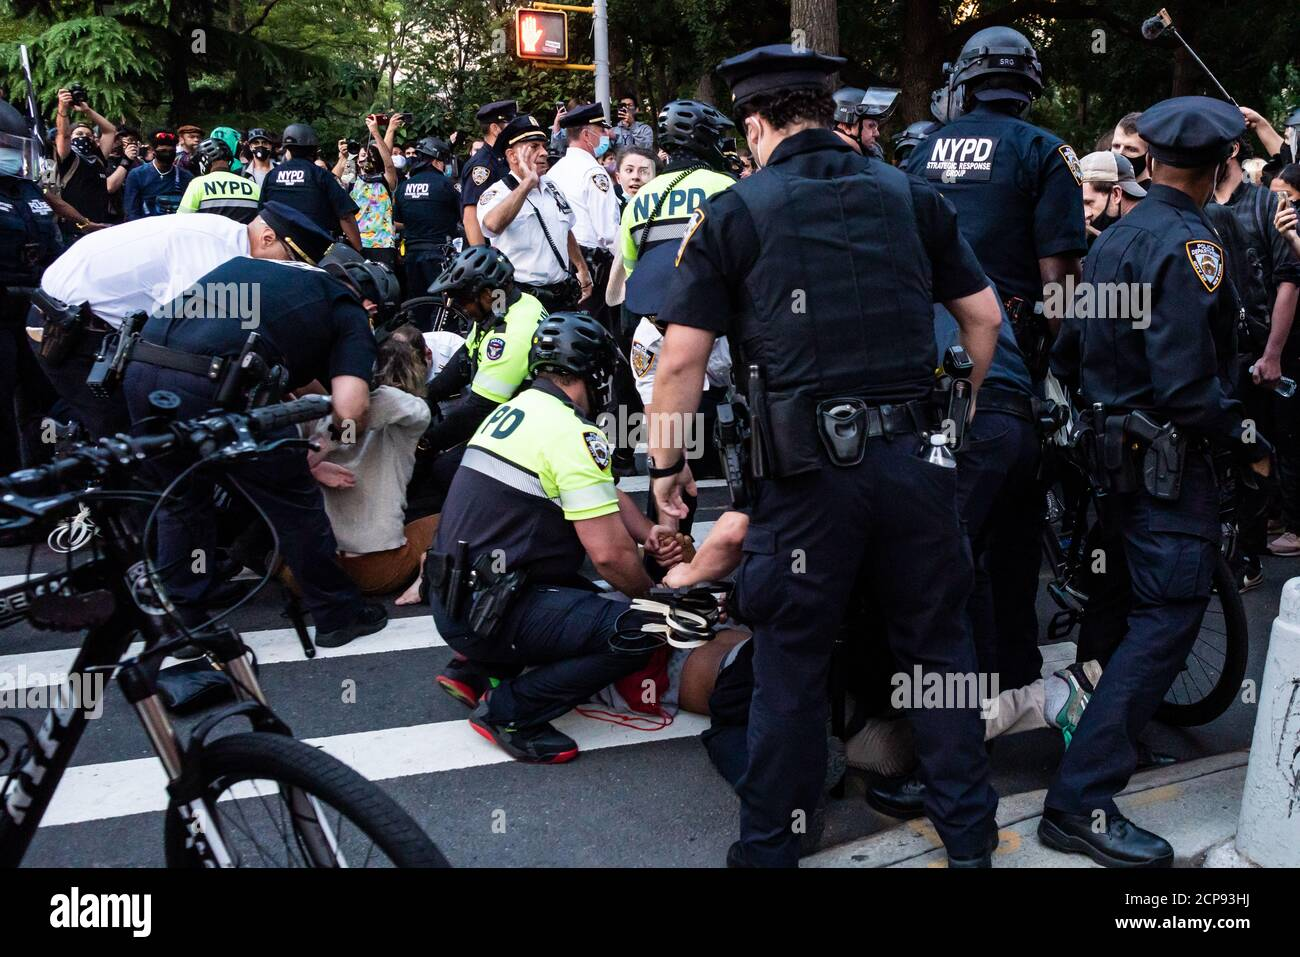 A protestor is arrested by NYPD offiicers during a demonstration against Immigration and Customs Enforcement in New York City on September 18, 20202. For a third day in a row, protestors demonstrated against alleged accusations that a physician perfomed medically unnecessary hysterectomies on undocumented women in I.C.E. custody. (Photo by Gabriele Holtermann/Sipa USA) Credit: Sipa USA/Alamy Live News Stock Photo